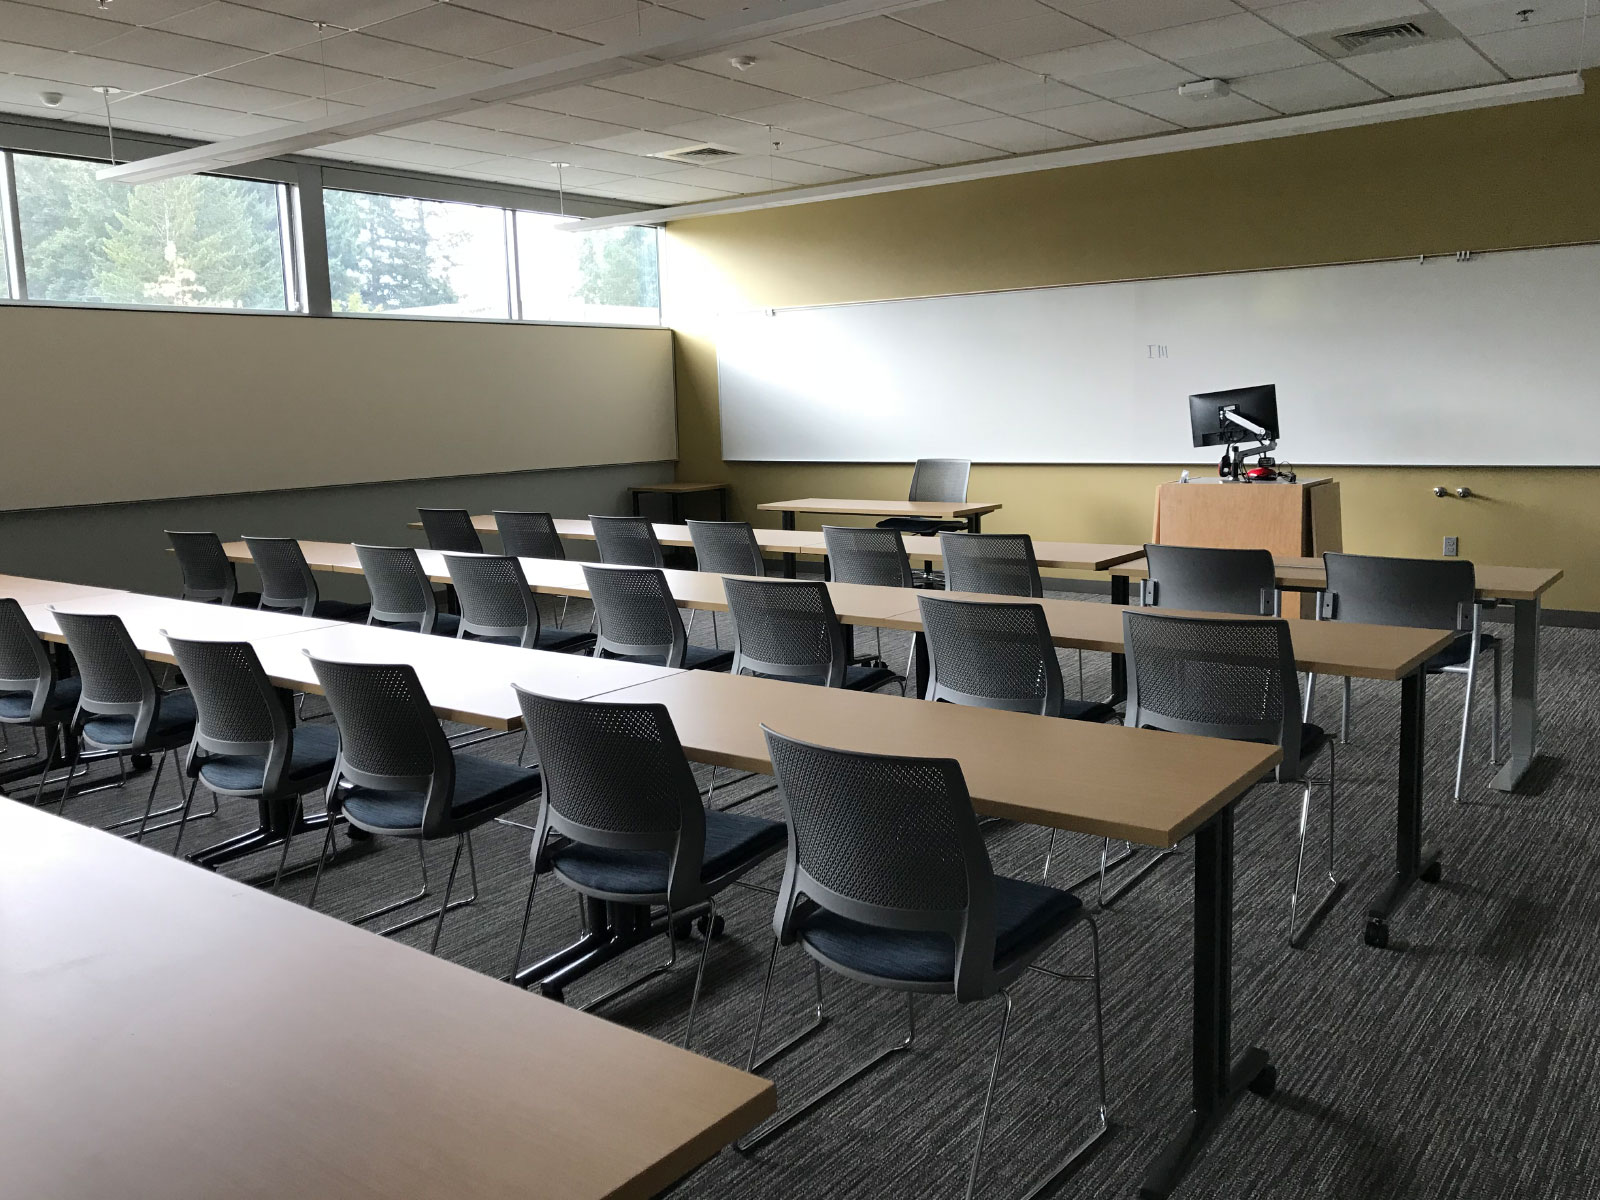 One of the Industrial Technology Center's many classrooms, featuring rows of chairs and table with a podium and room-wide whiteboard